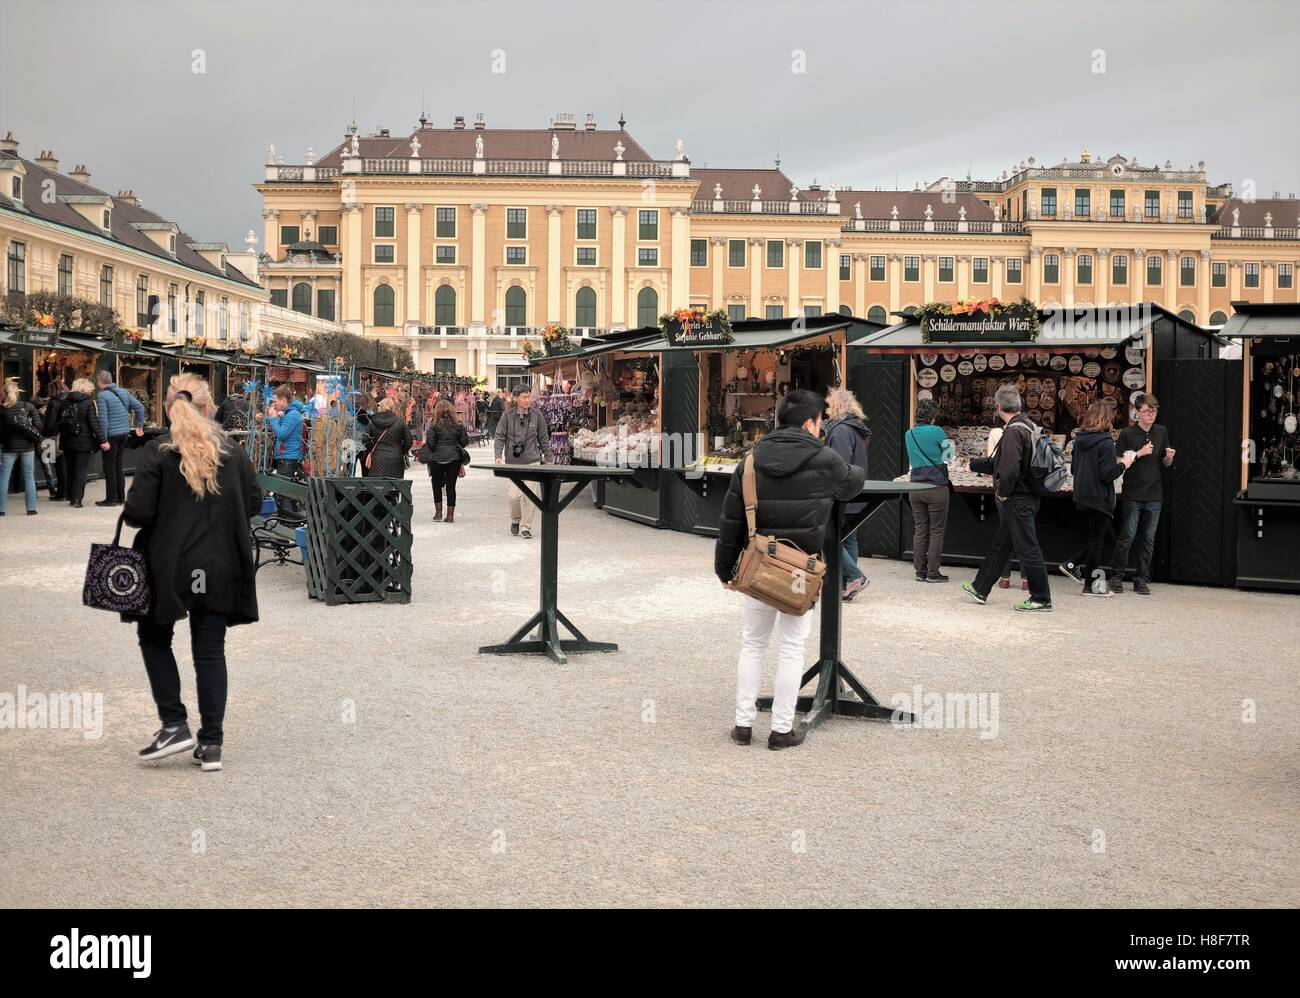 The annual Vienna Easter Market is a public event attended by domestic and international tourists as well as locals. - Stock Image